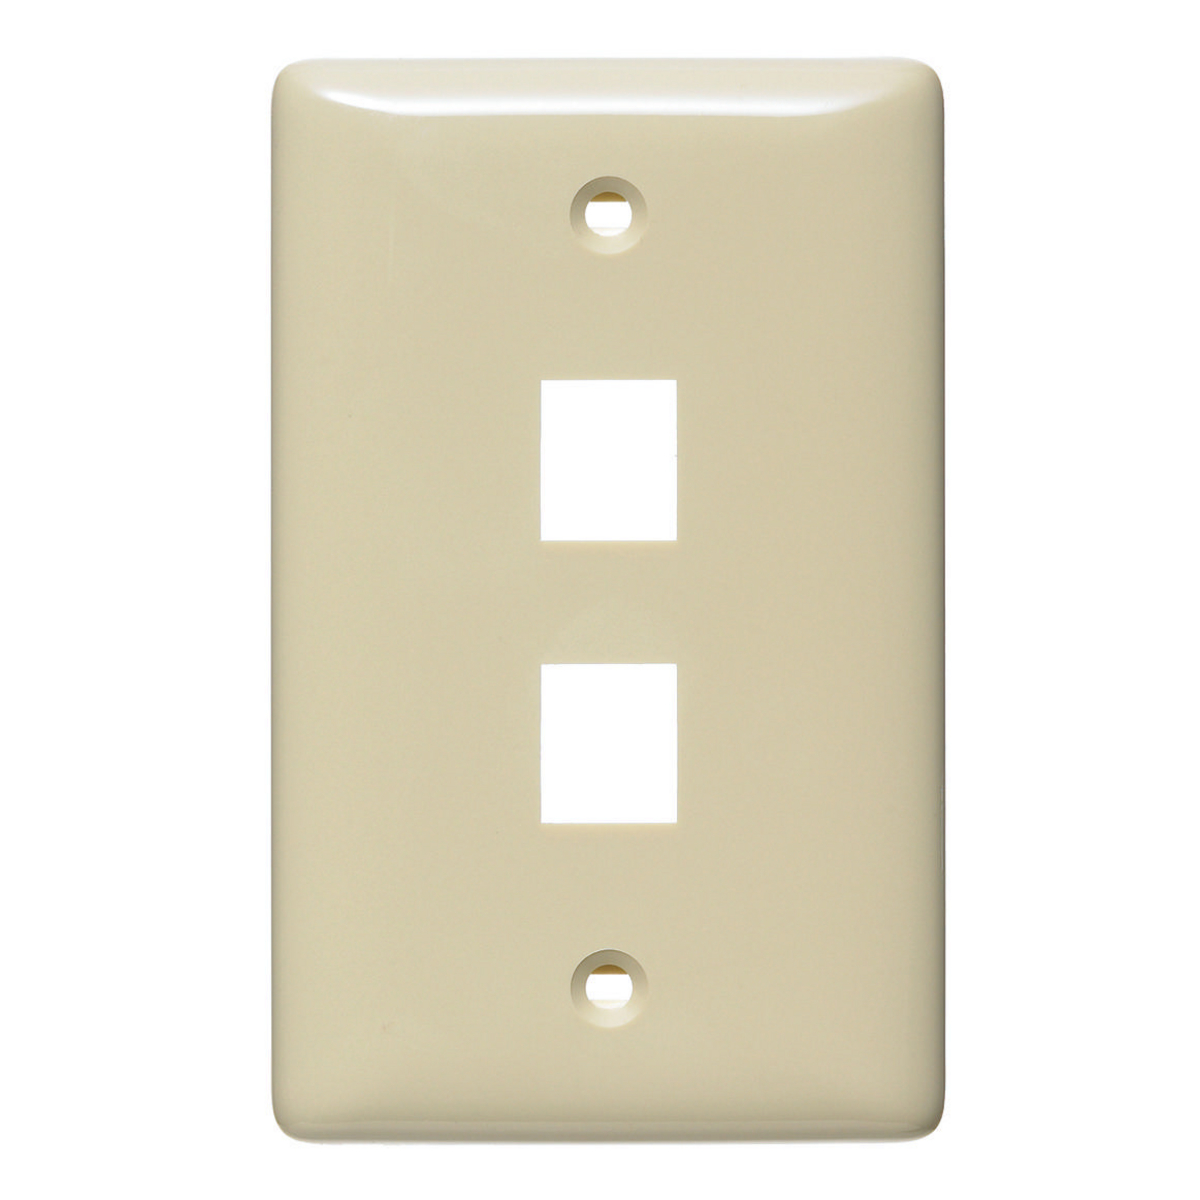 Hubbell NSP12I 1-Gang Ivory Thermoplastic Standard 2-Port Data Communication Face Plate